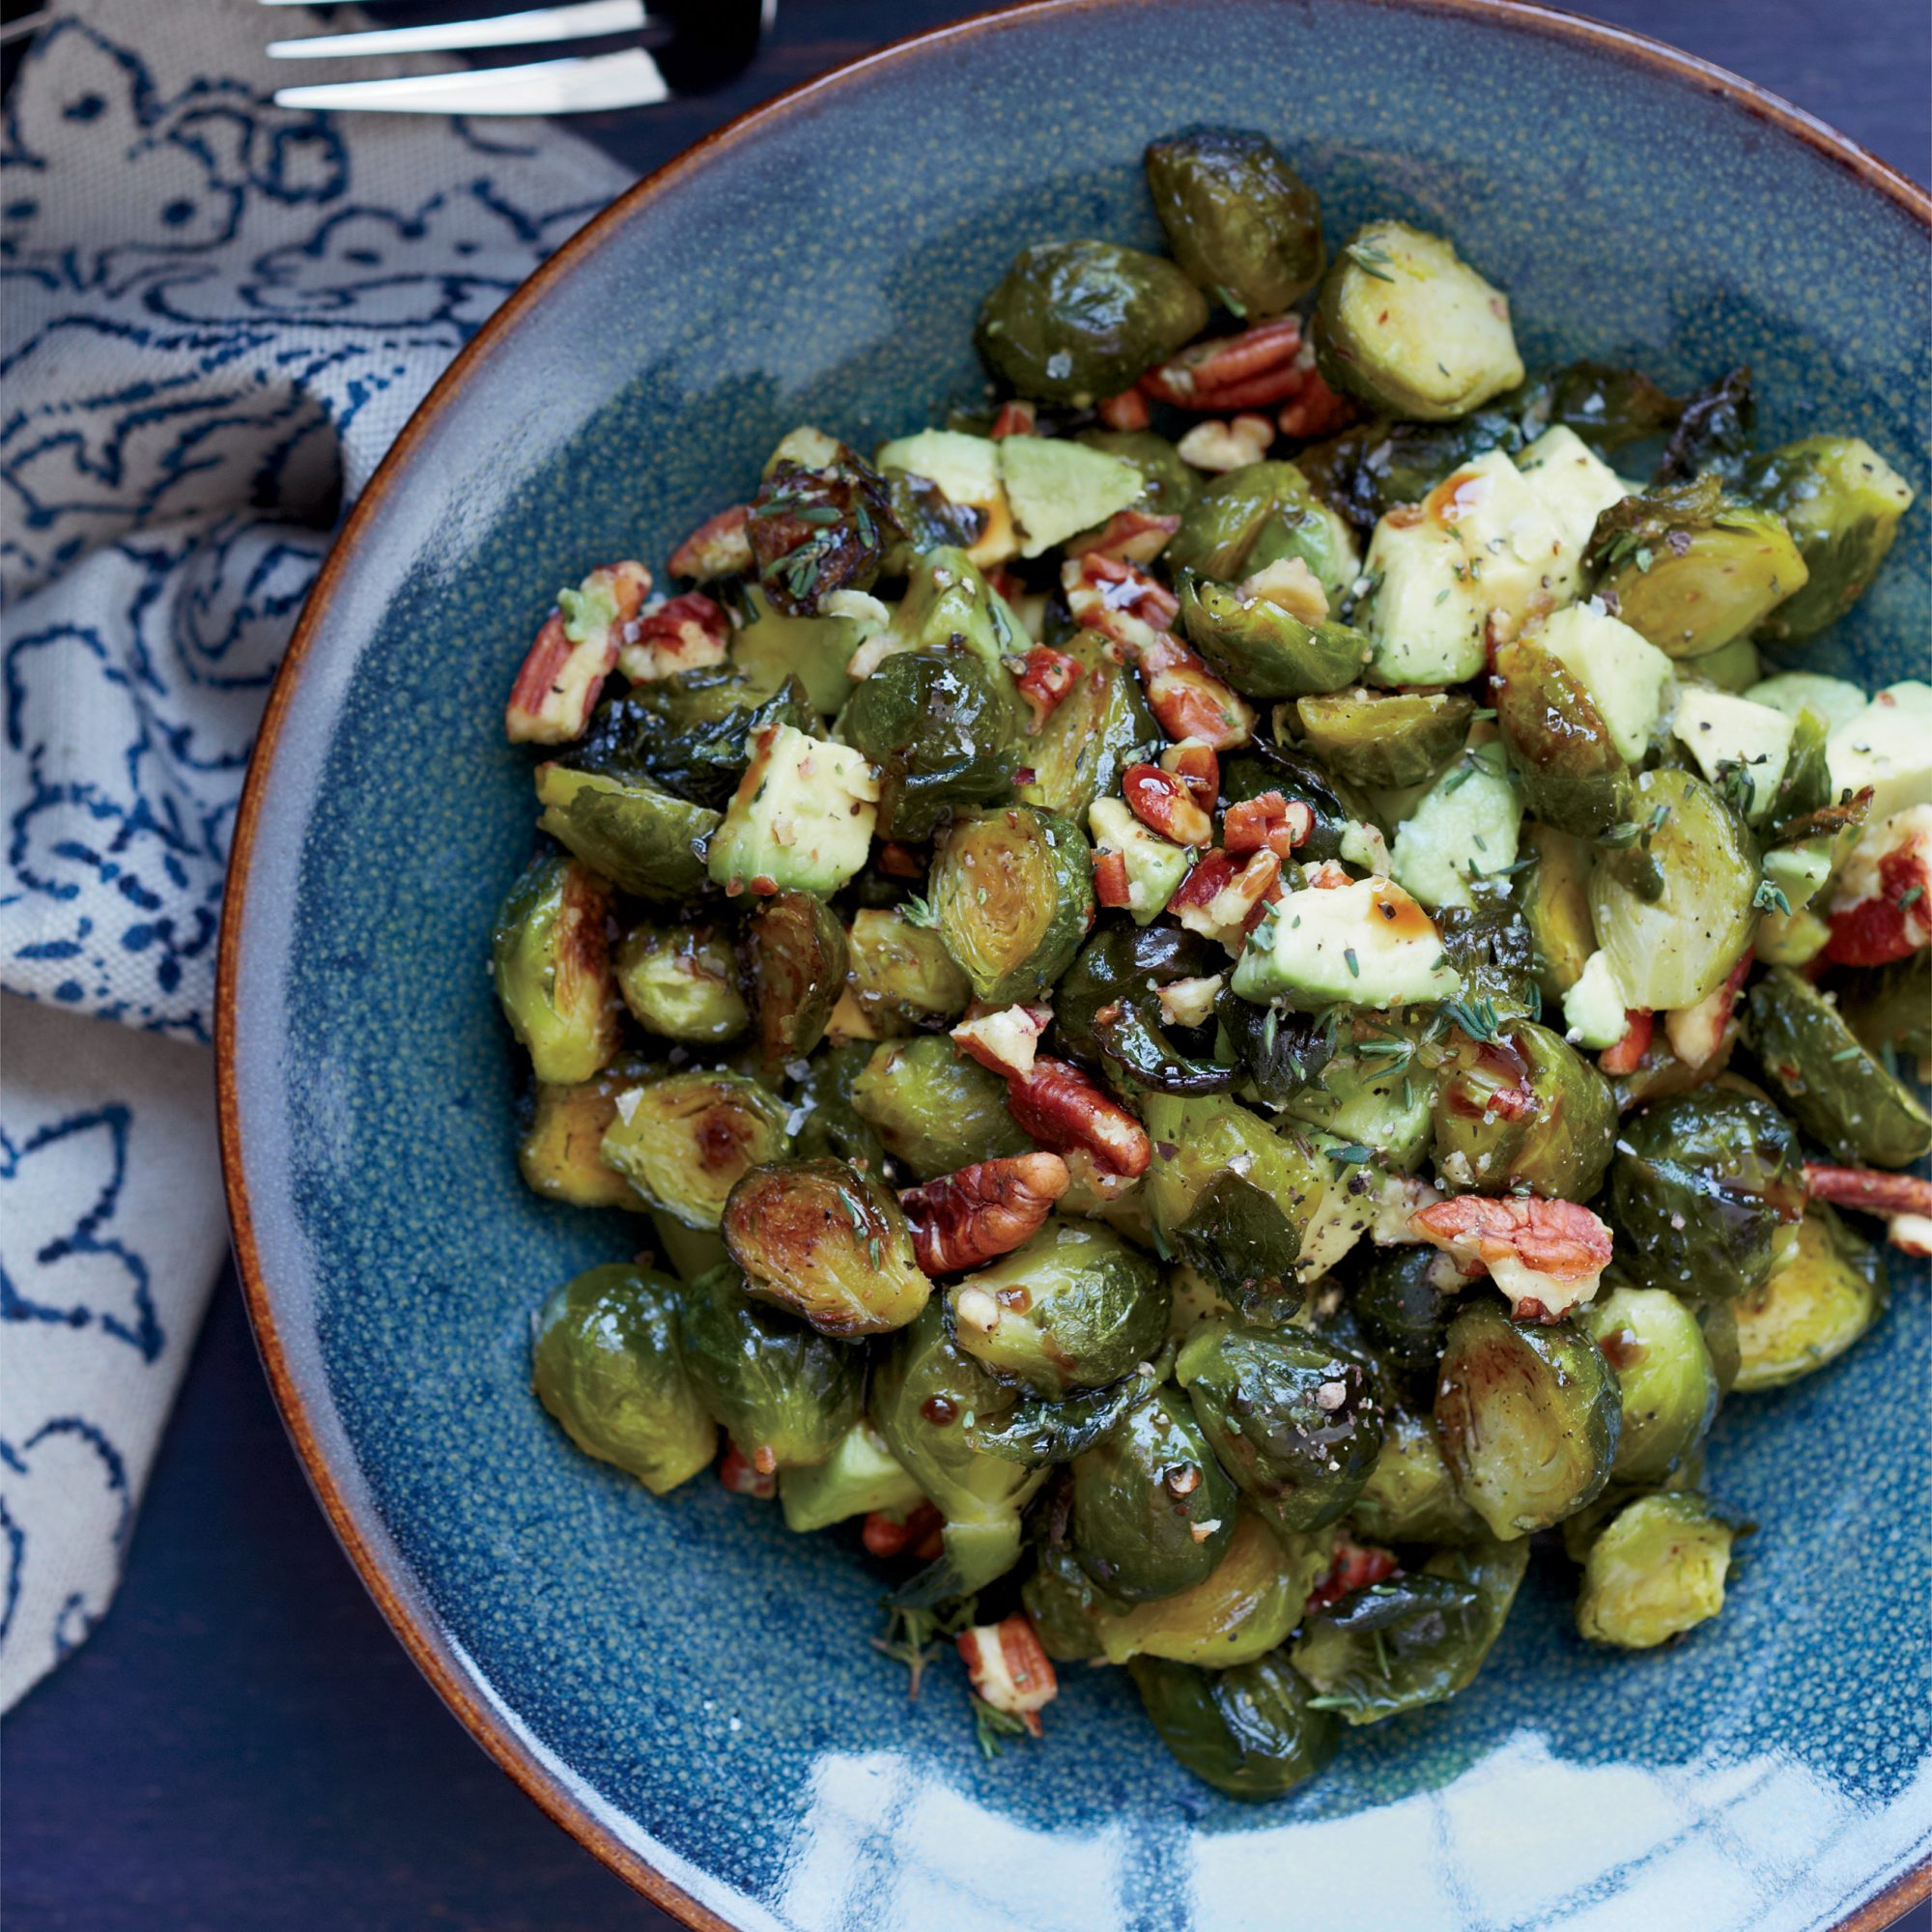 Roasted Brussels Sprouts with Toasted Pecans and Avocado